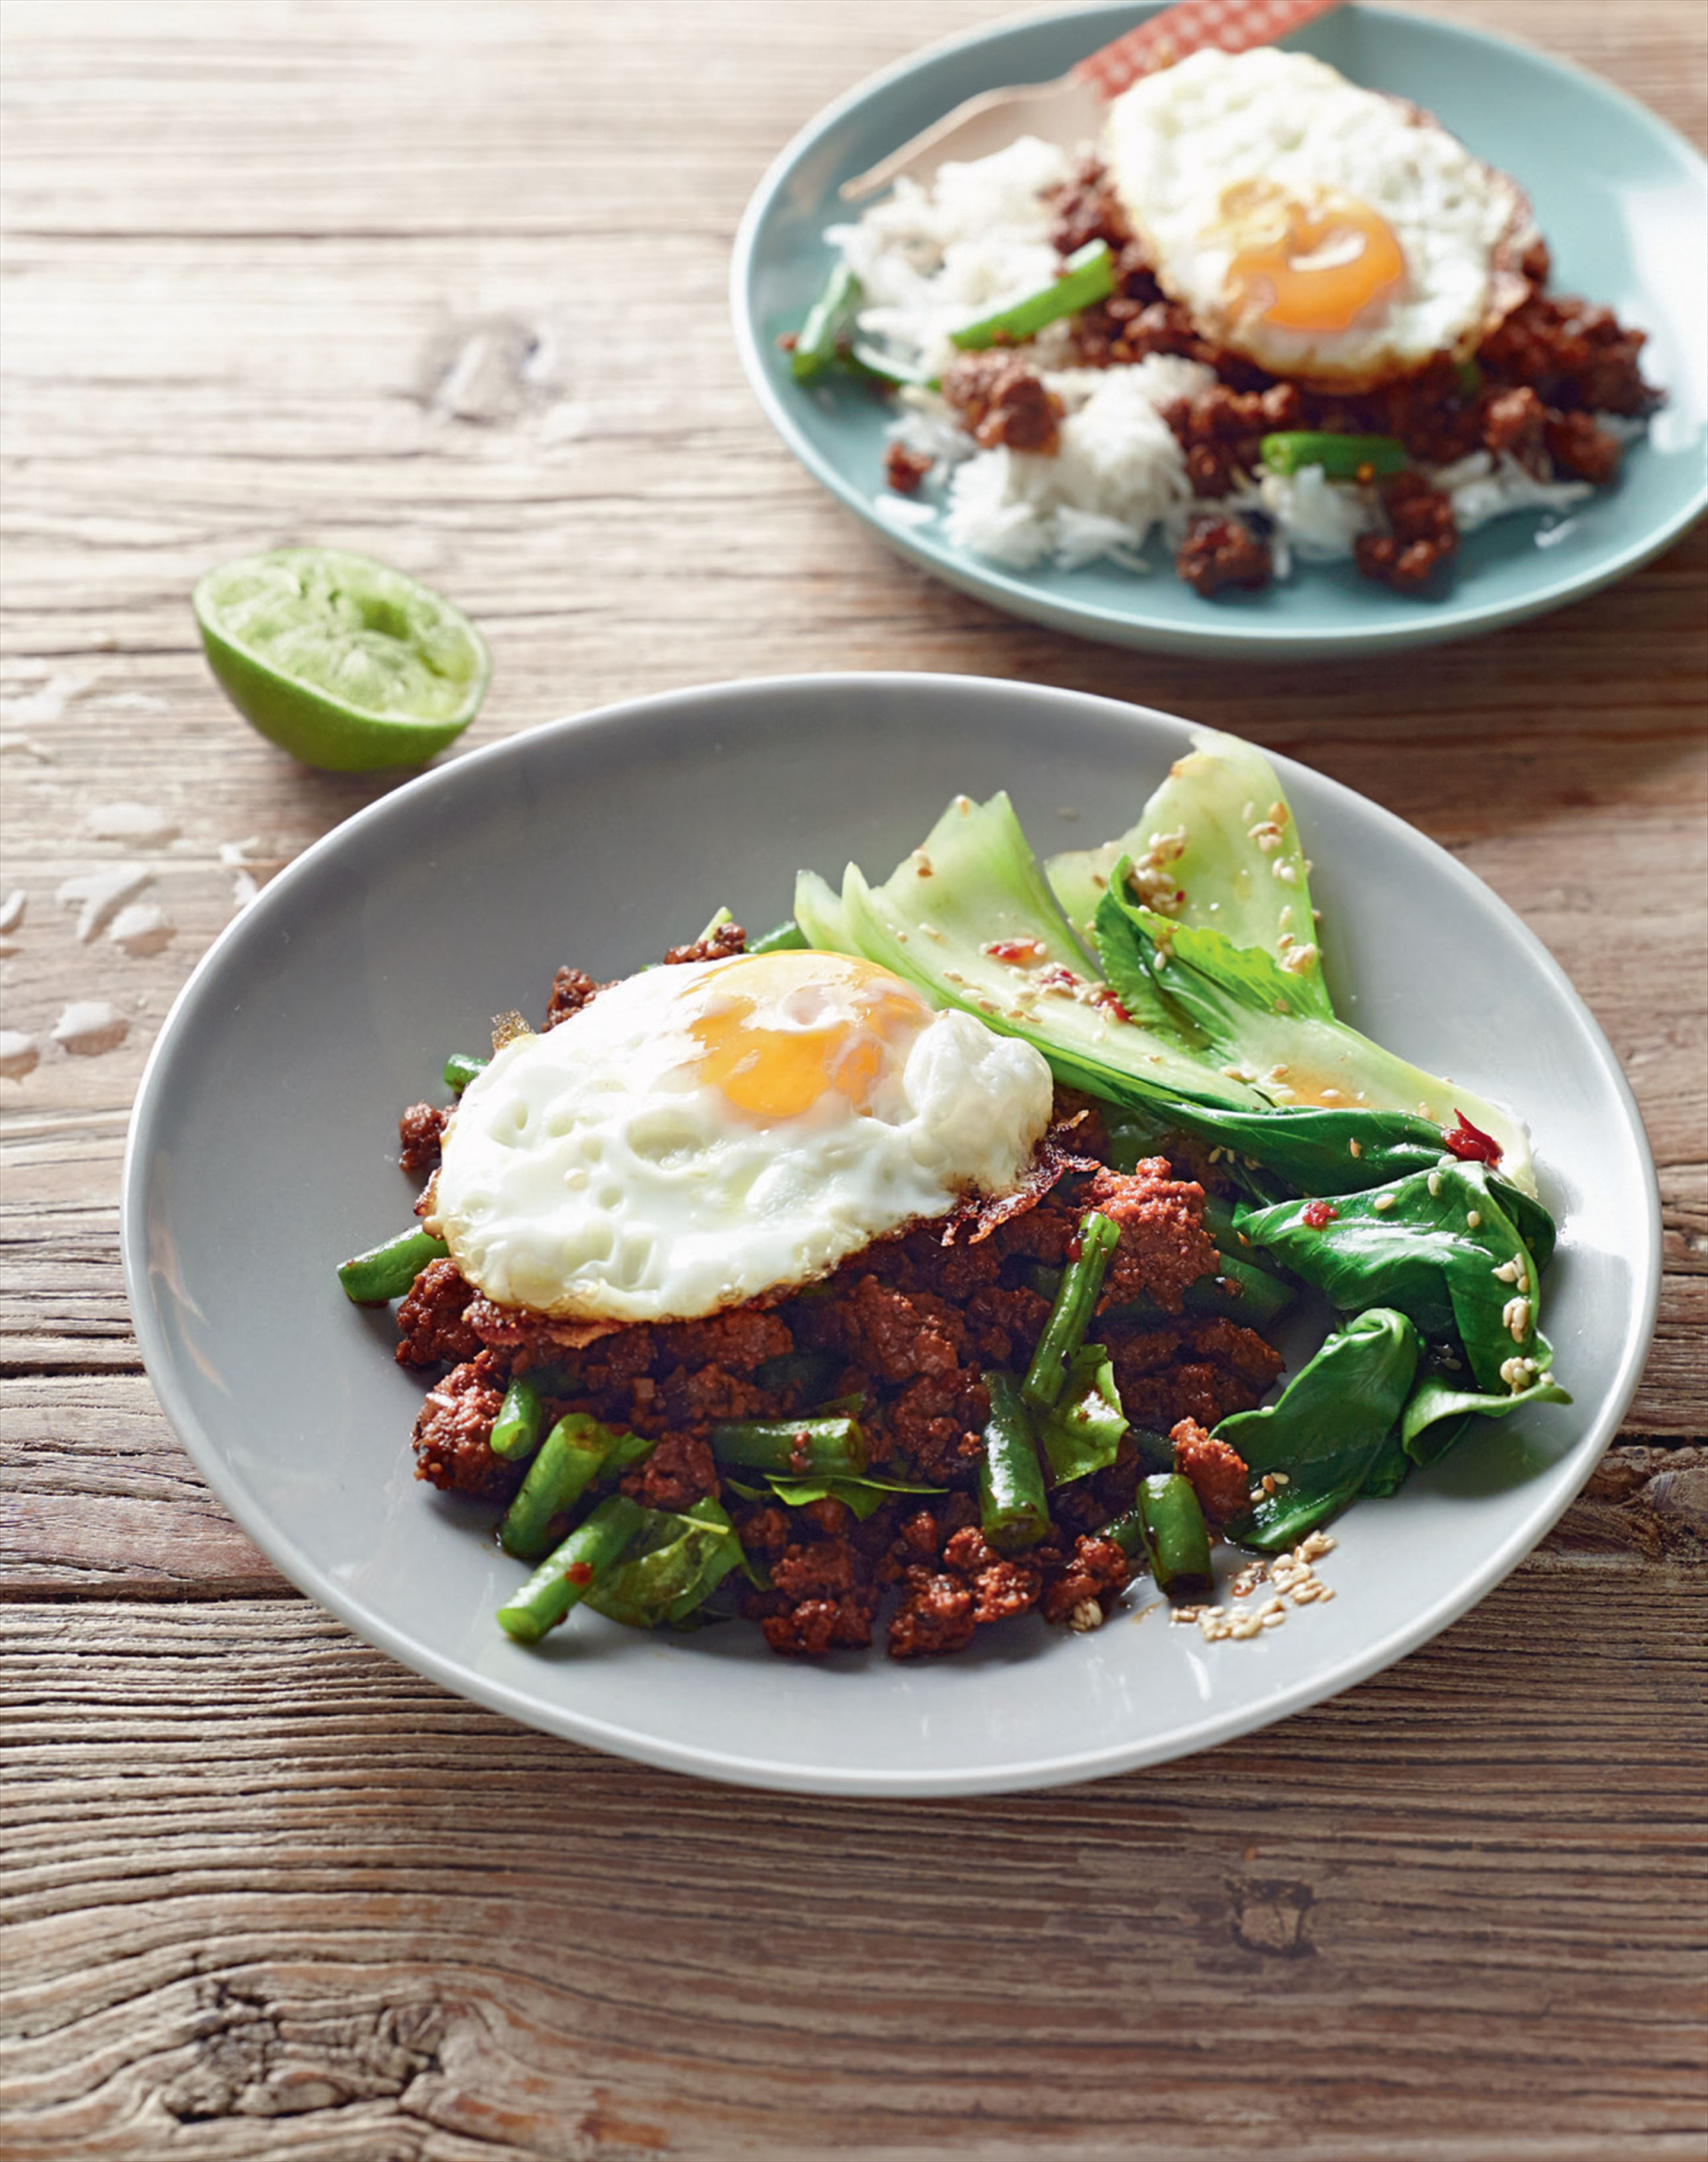 Thai pork and fried egg